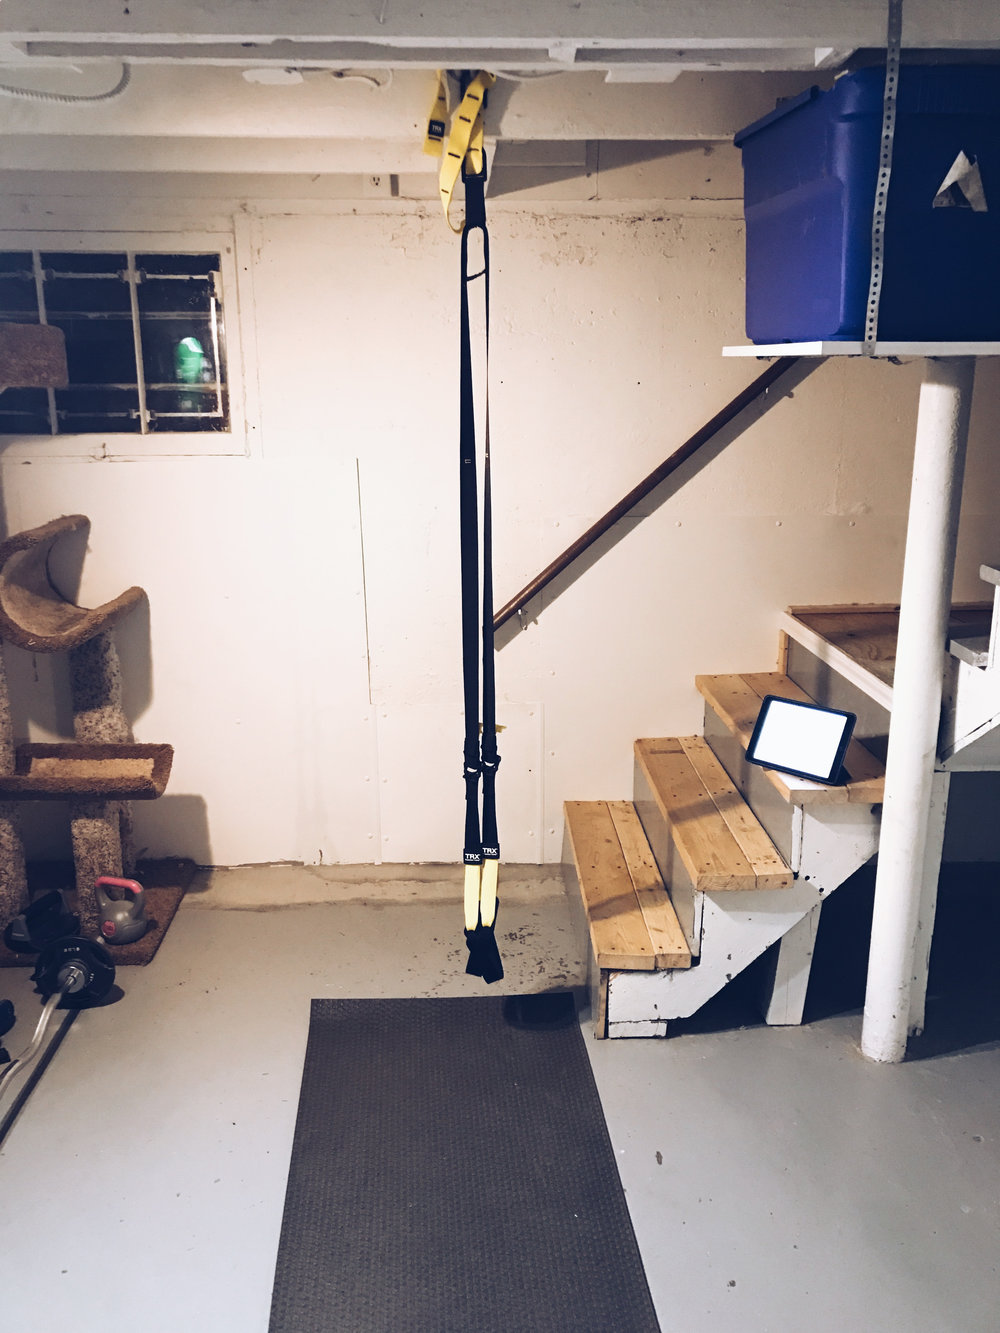 For those of you not familiar with TRX straps, here is a picture of mine hanging in my basement.